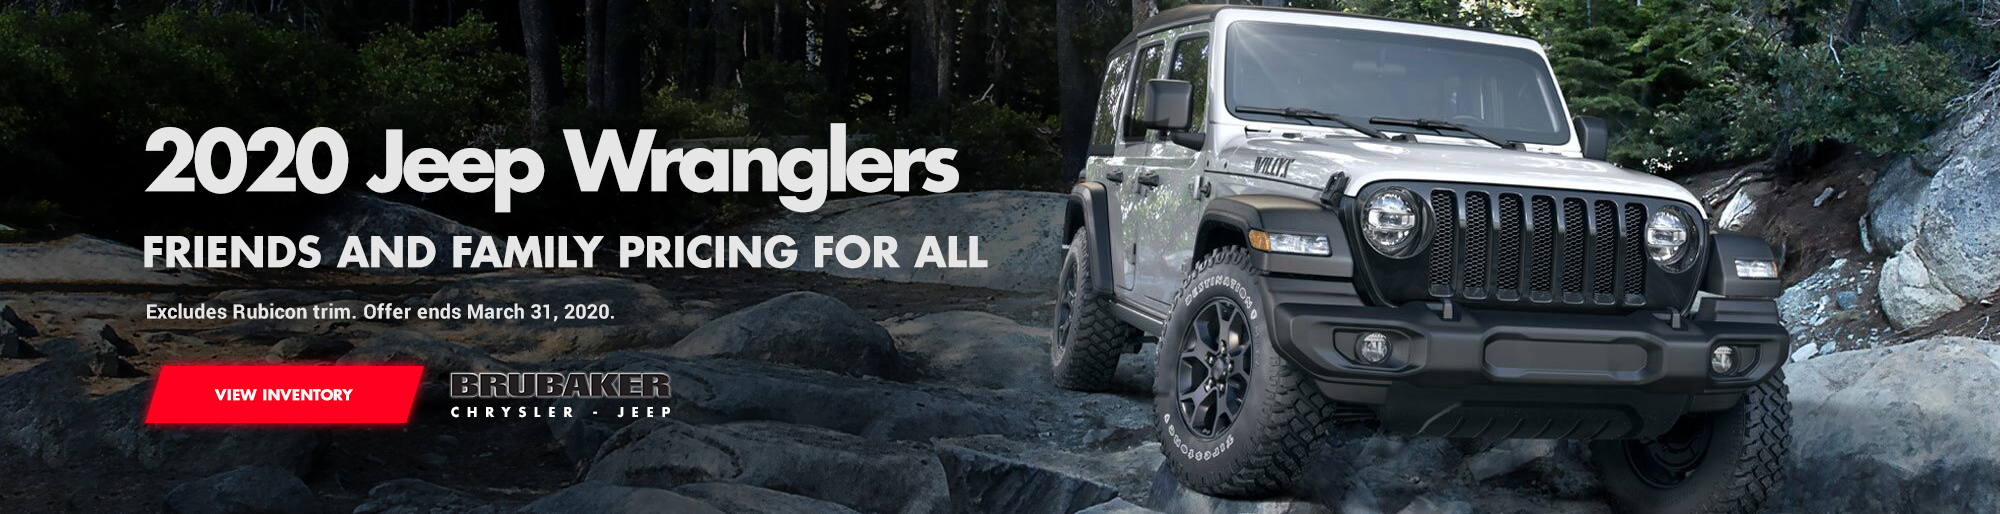 2020 Jeep Wrangler Friends and Family Pricing for all